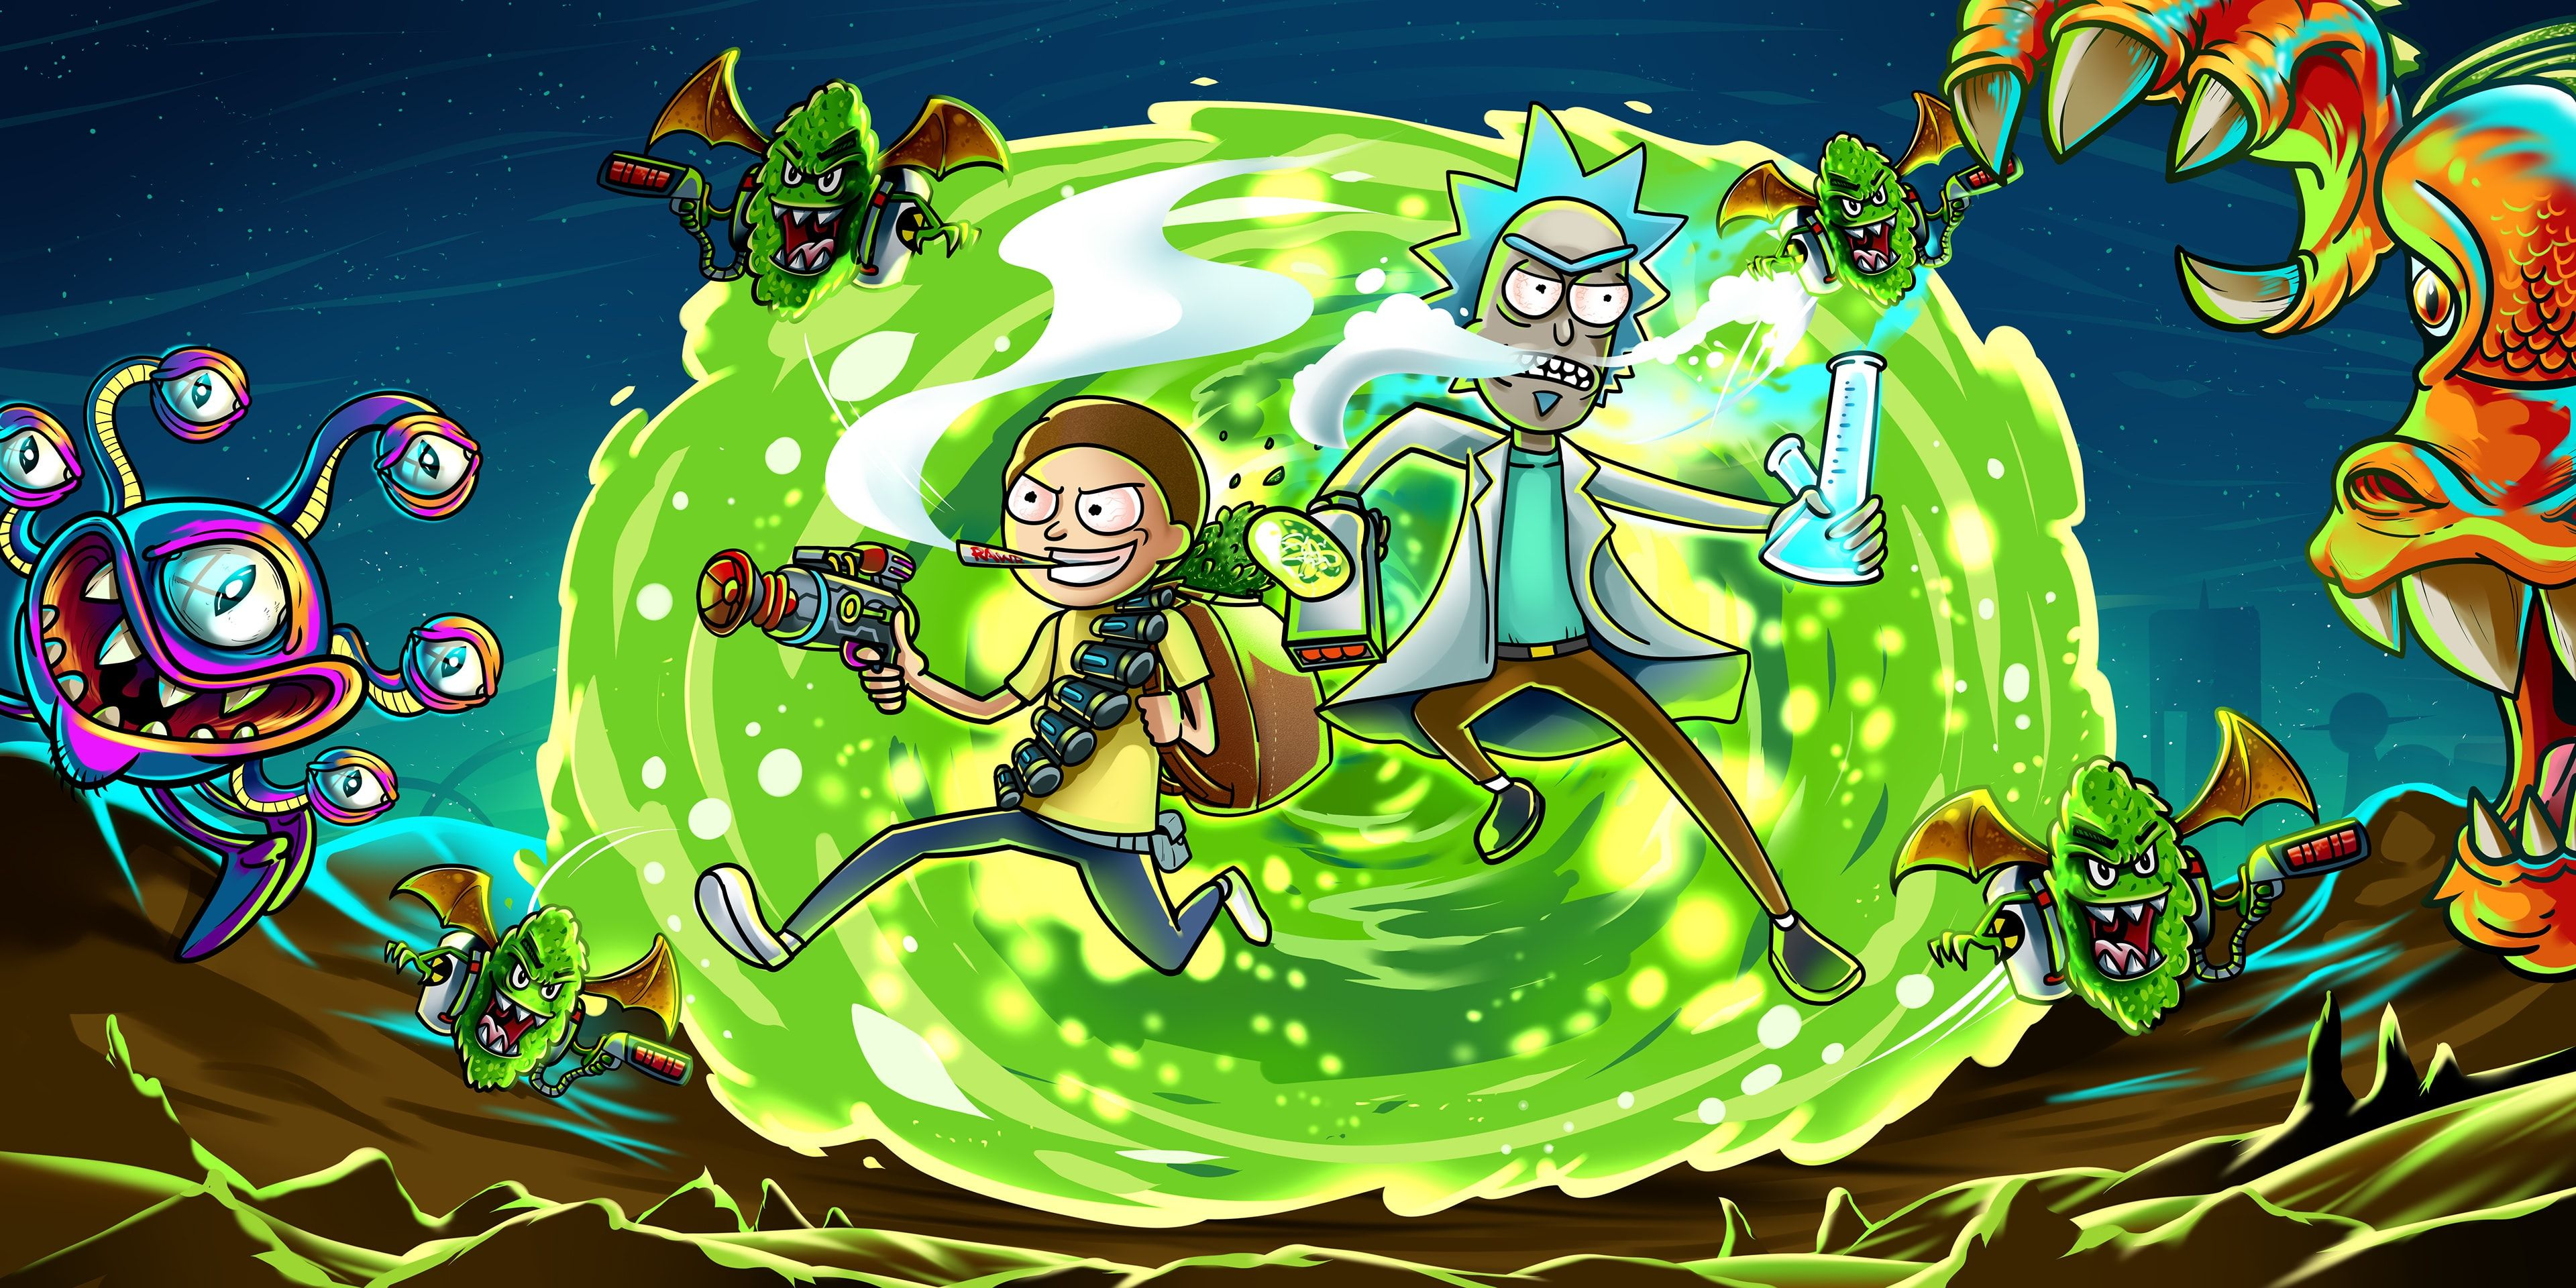 Rick And Morty Desktop Wallpapers 1920x1080 Wallpapers Trippy Trippy Computer Wallpaper Rick And Morty Wallpapers